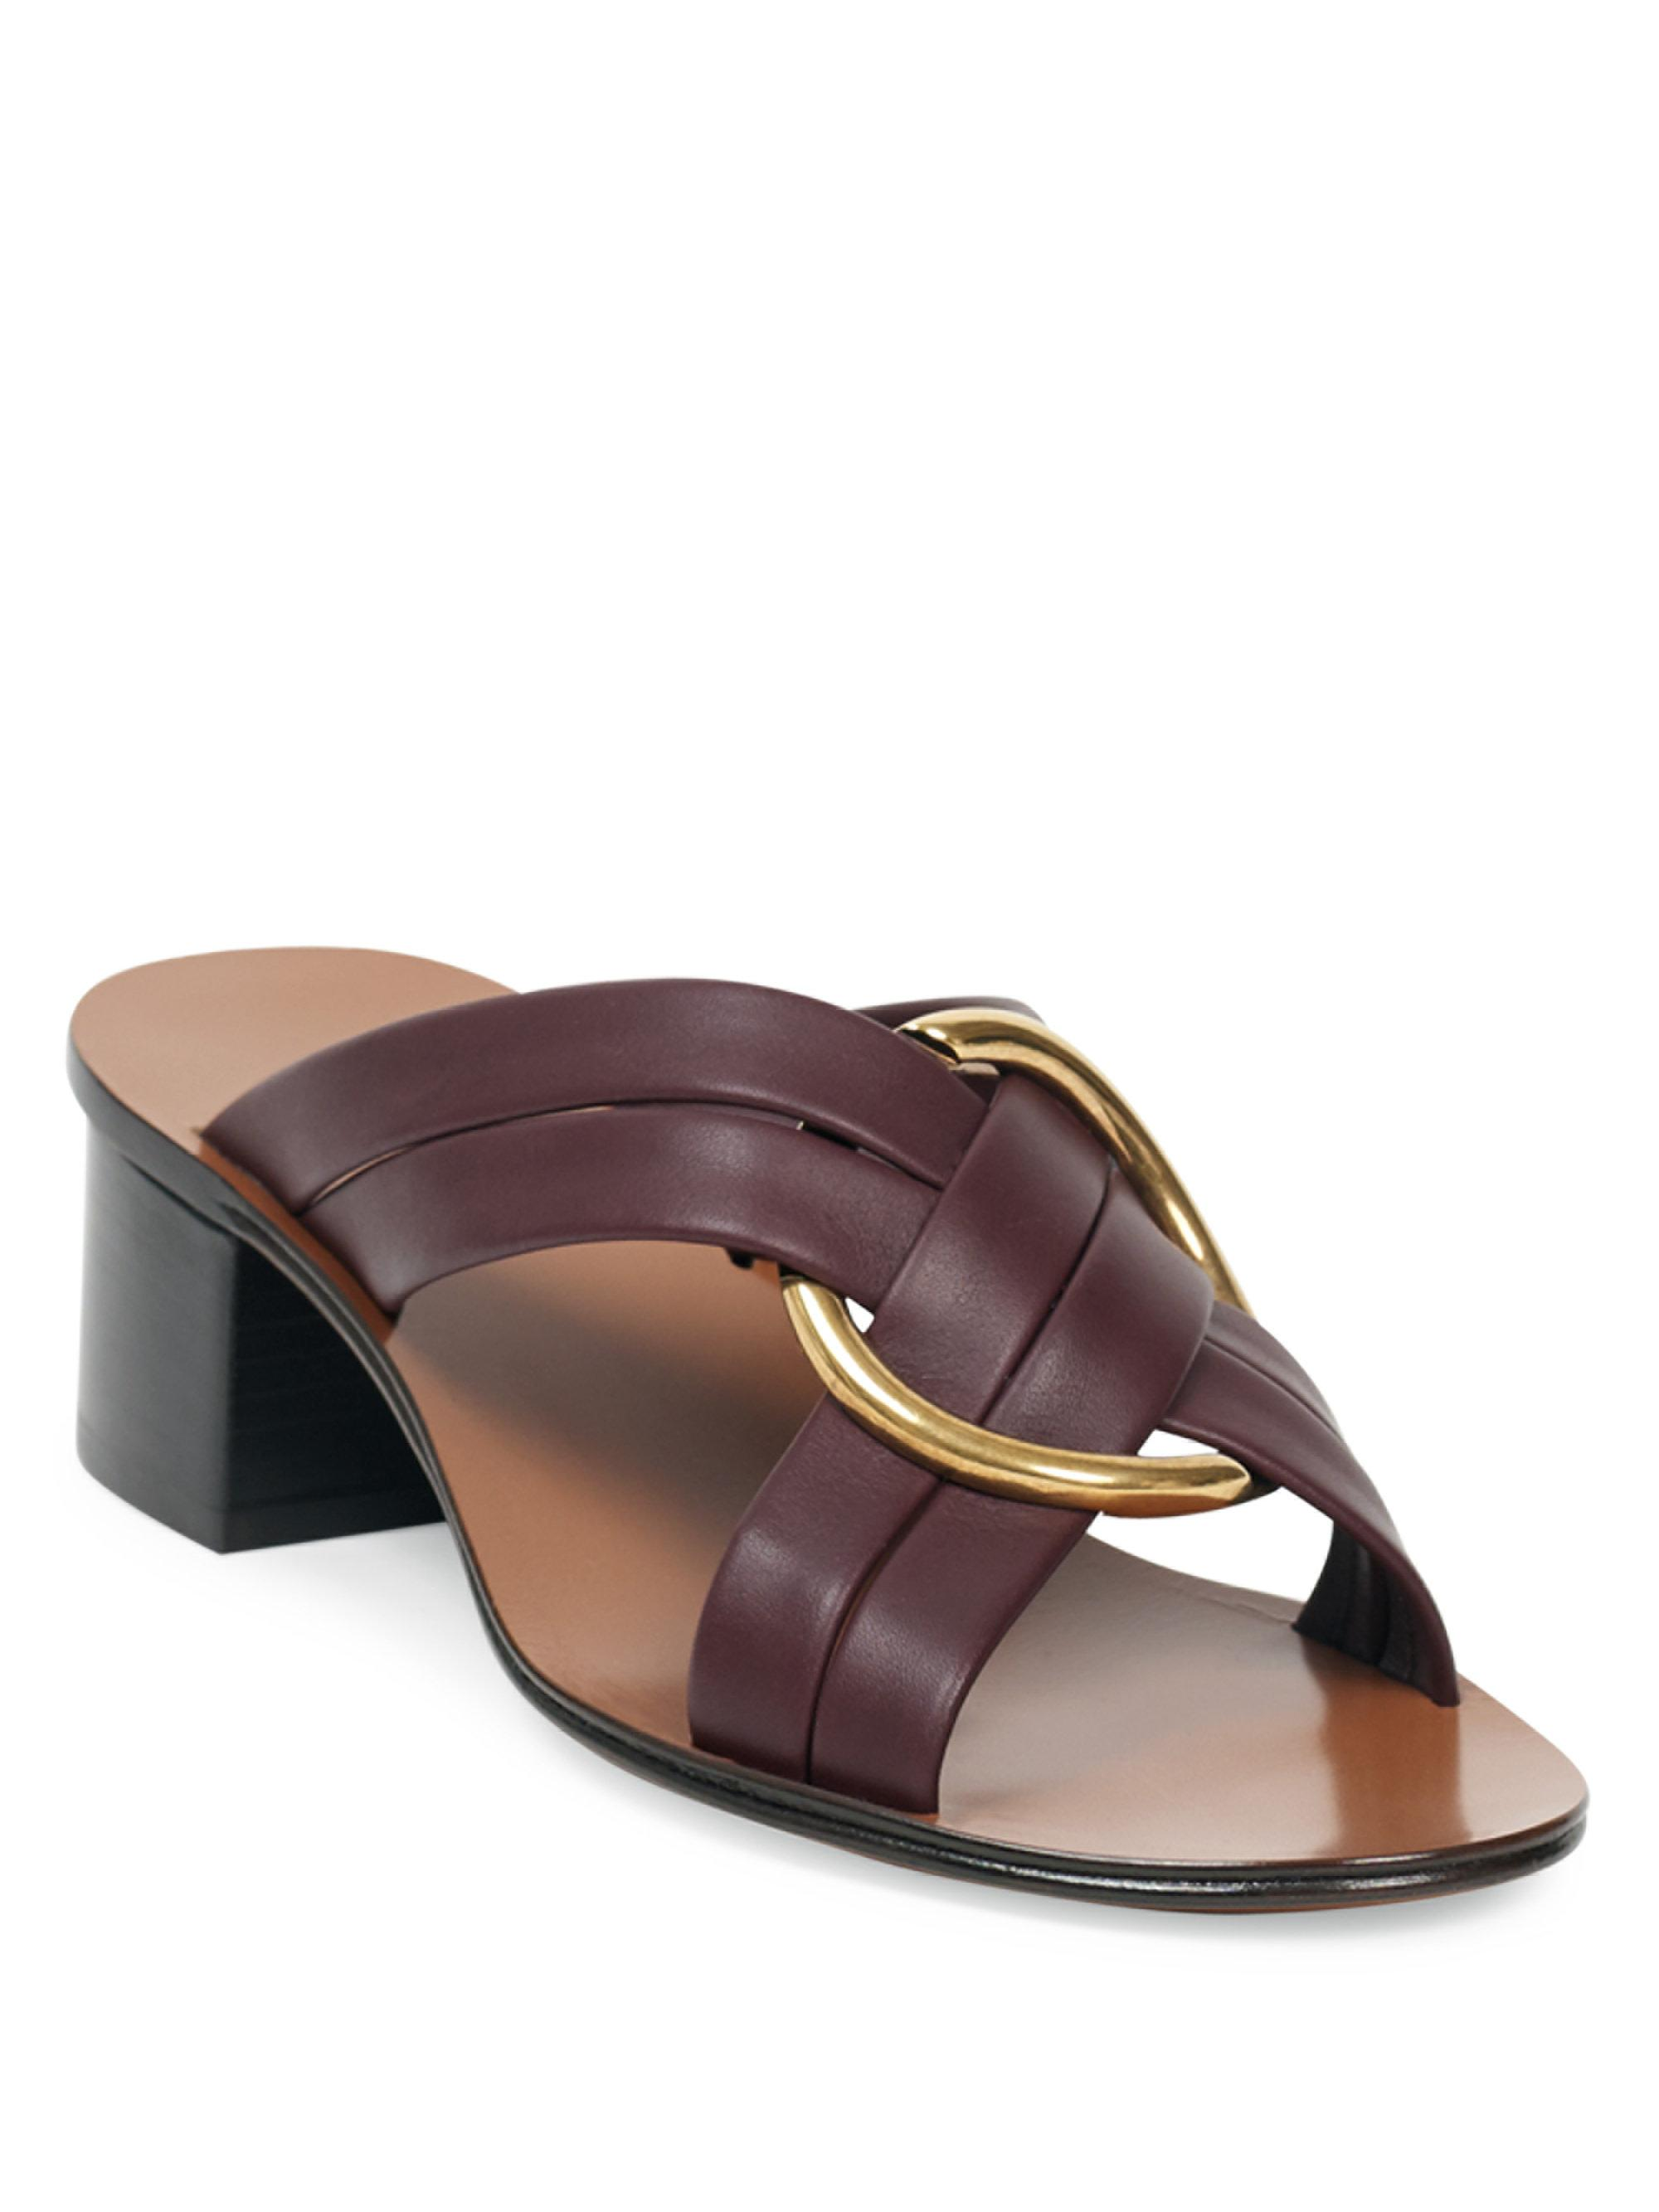 Chloé Rony mid-heel sandals clearance sneakernews clearance websites buy cheap with mastercard Ov7HziqaU